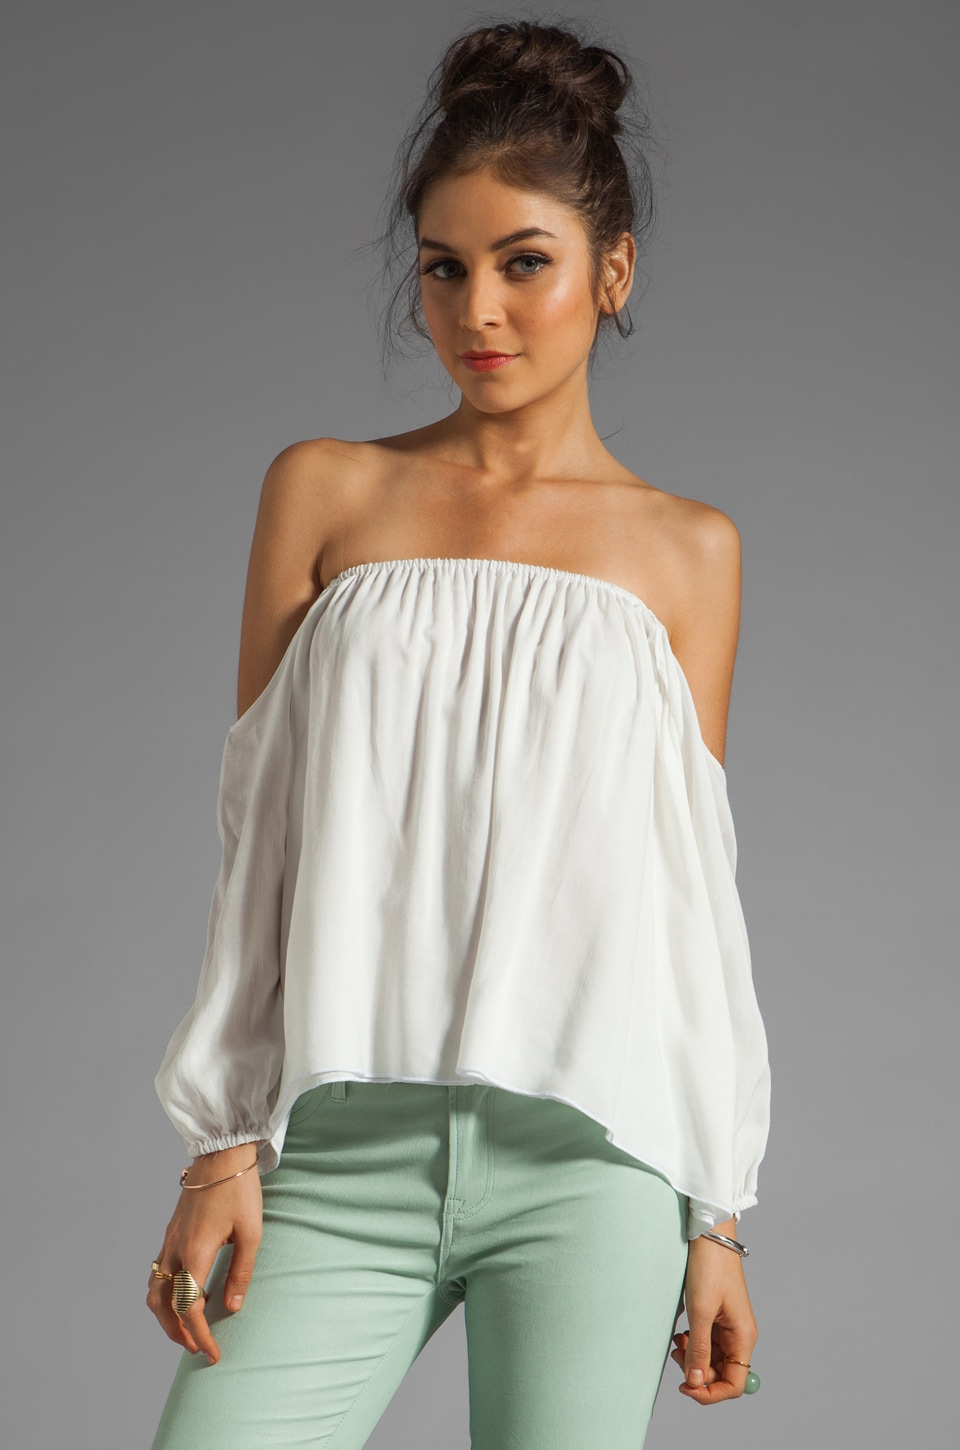 Boulee Audrey Top in Off White